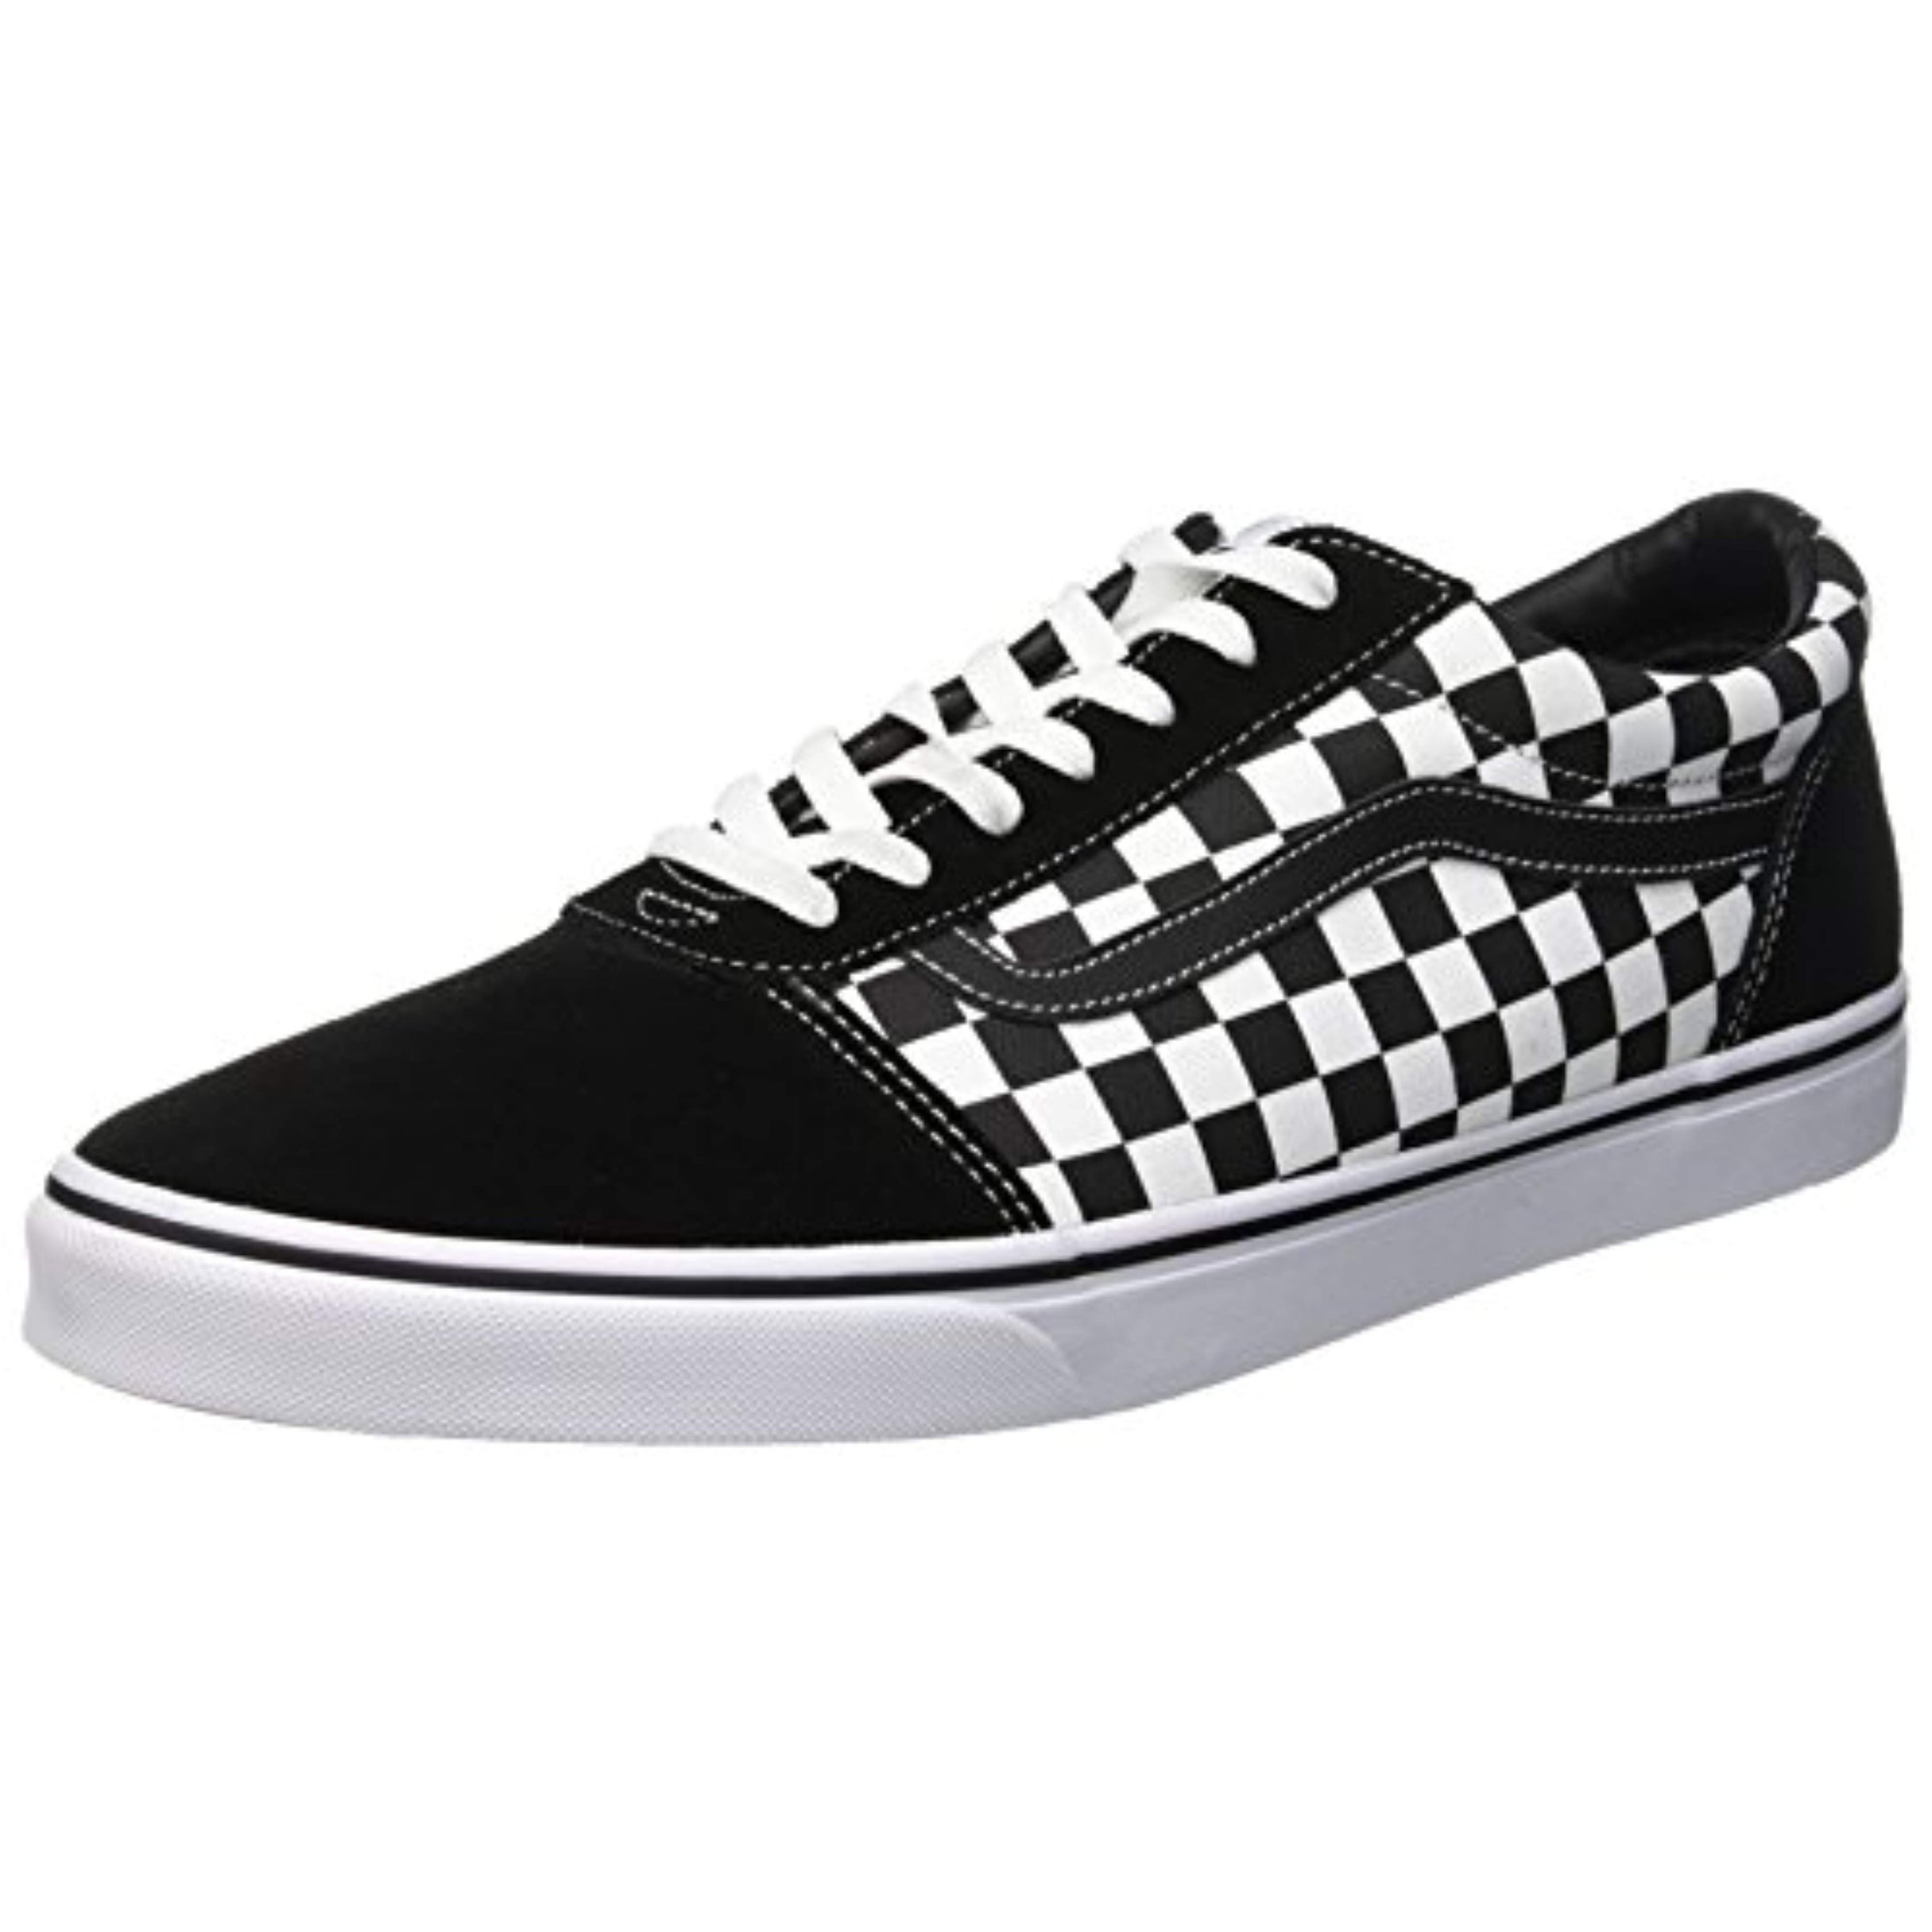 34be72841bc308 Size 8.5 Vans Men s Shoes